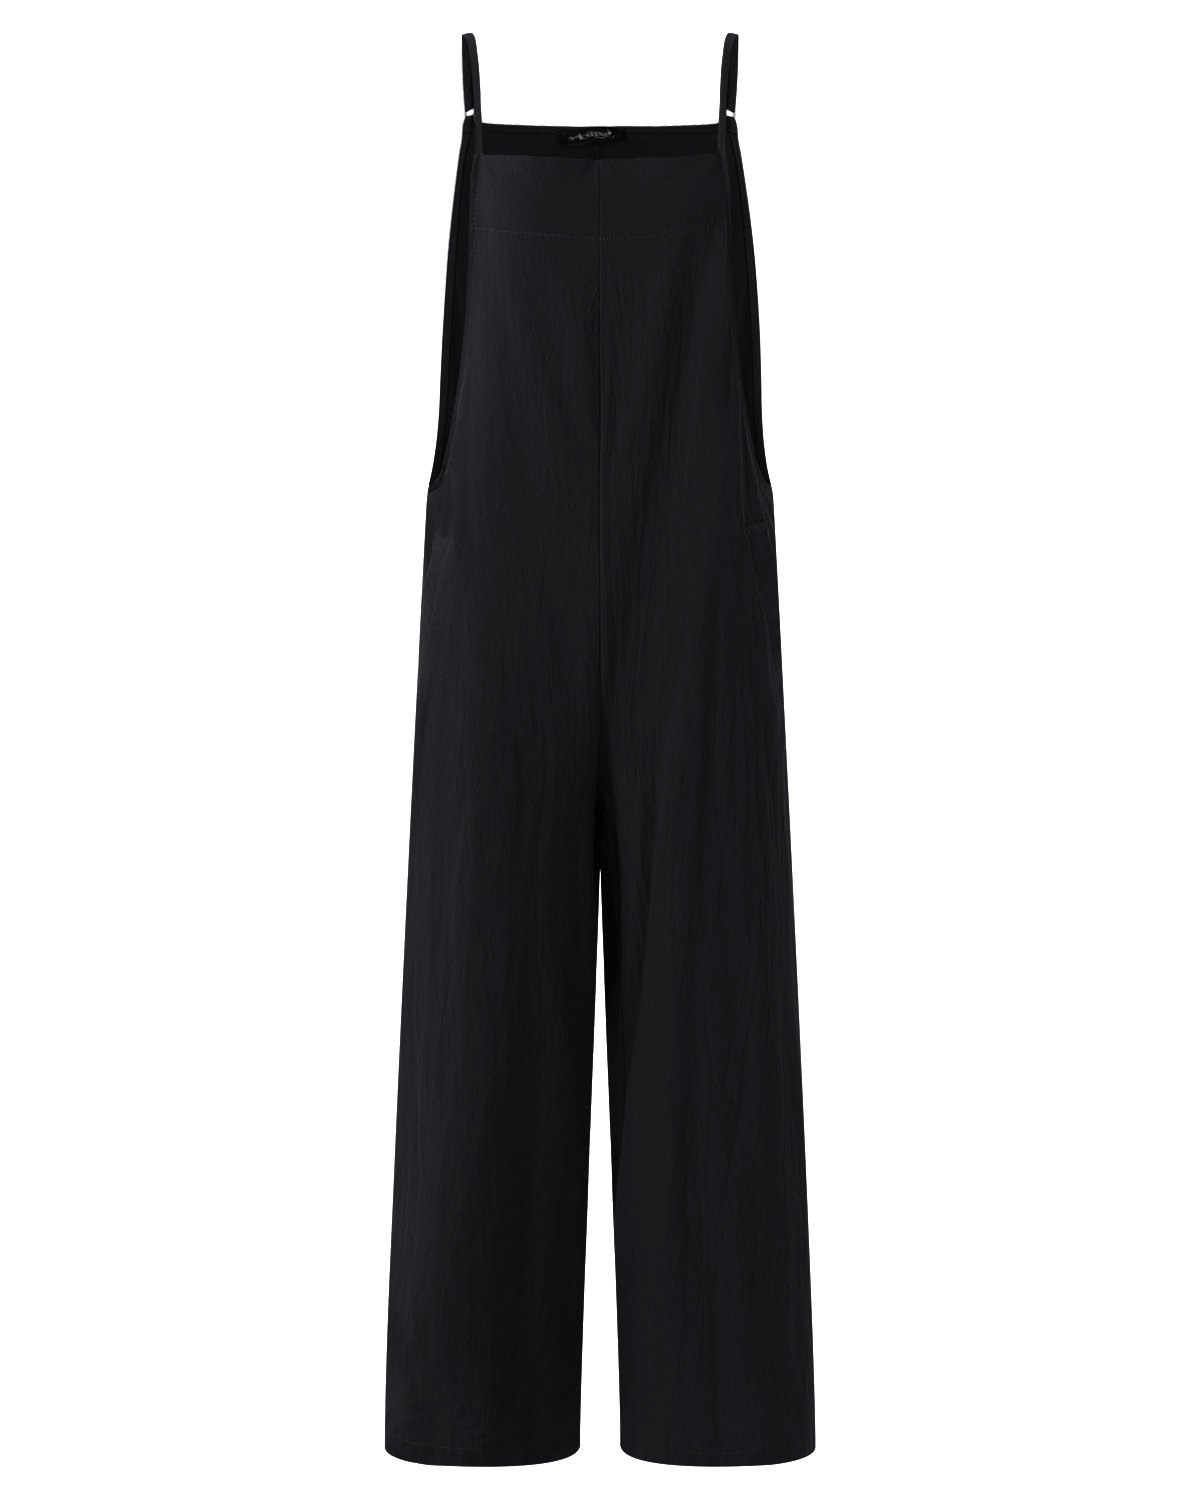 StyleDome Fashion Women Casual Loose Cotton Solid Jumpsuit Long Suspender Overalls Bib Pants Plus Size Romper Black Small by StyleDome (Image #2)